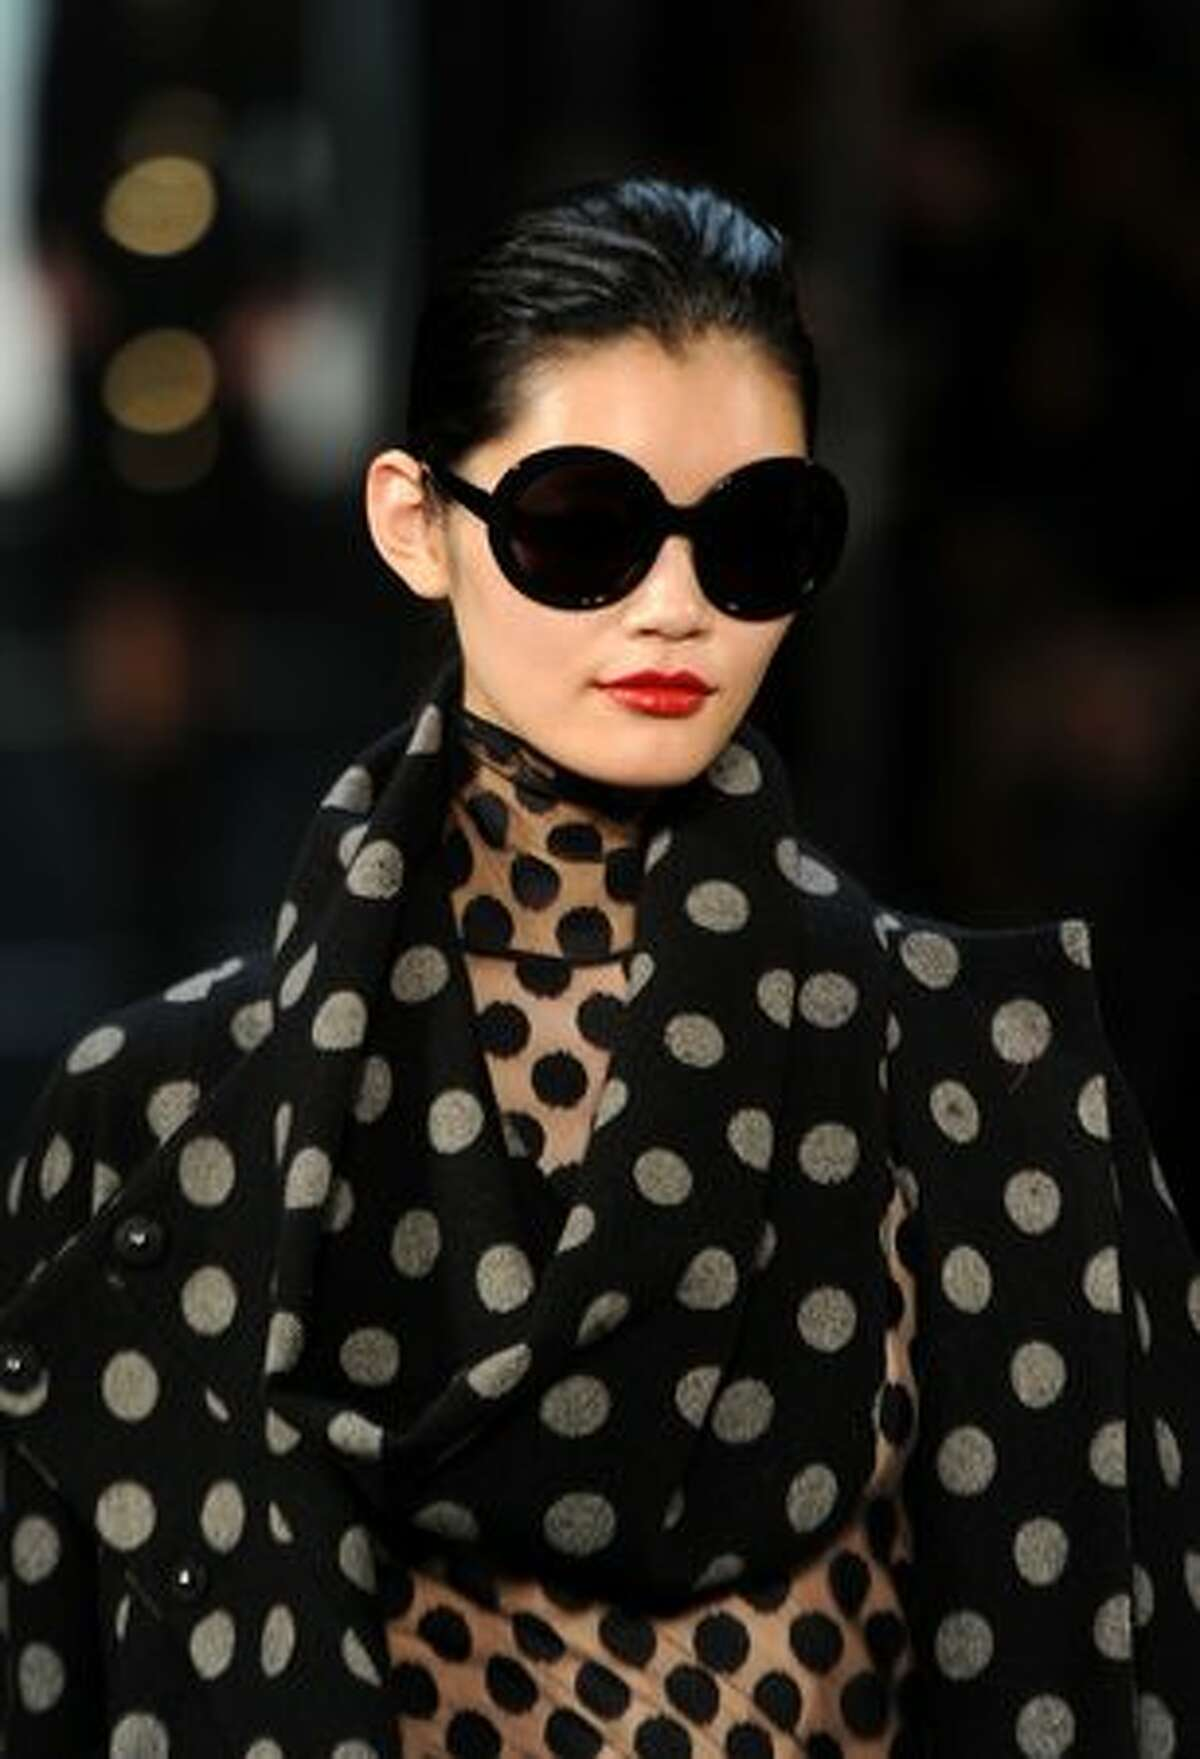 A model walks the runway at the Diane von Furstenberg Fall 2011 fashion show during Mercedes-Benz Fashion Week at The Theatre in New York City.